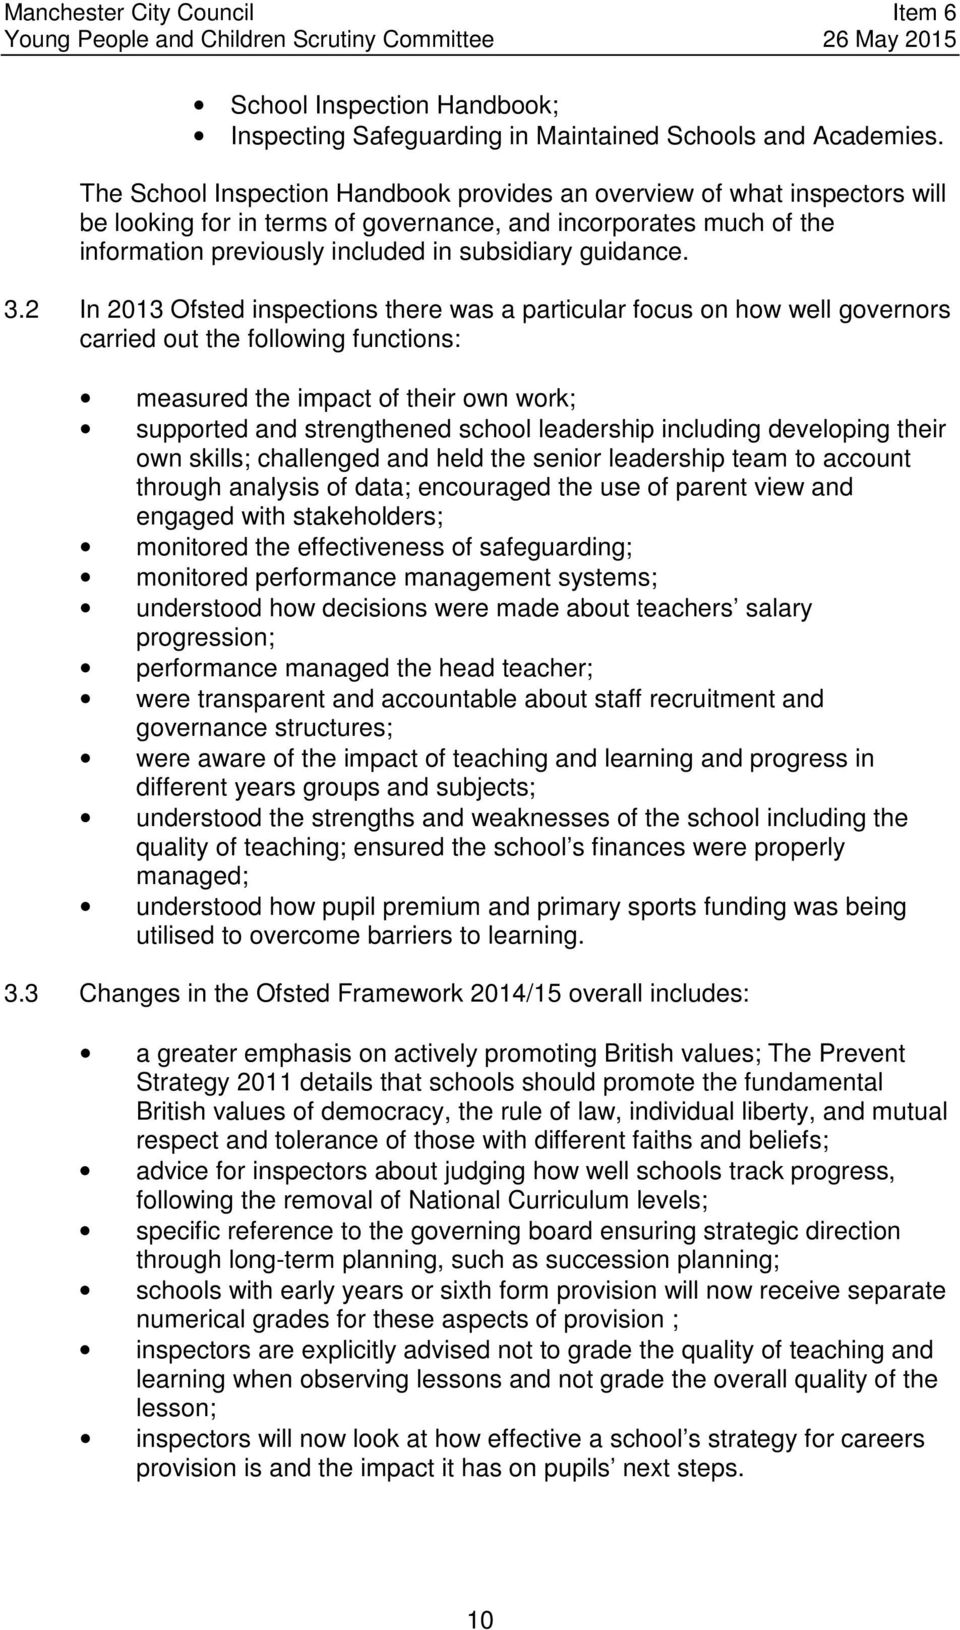 3.2 In 2013 Ofsted inspections there was a particular focus on how well governors carried out the following functions: measured the impact of their own work; supported and strengthened school